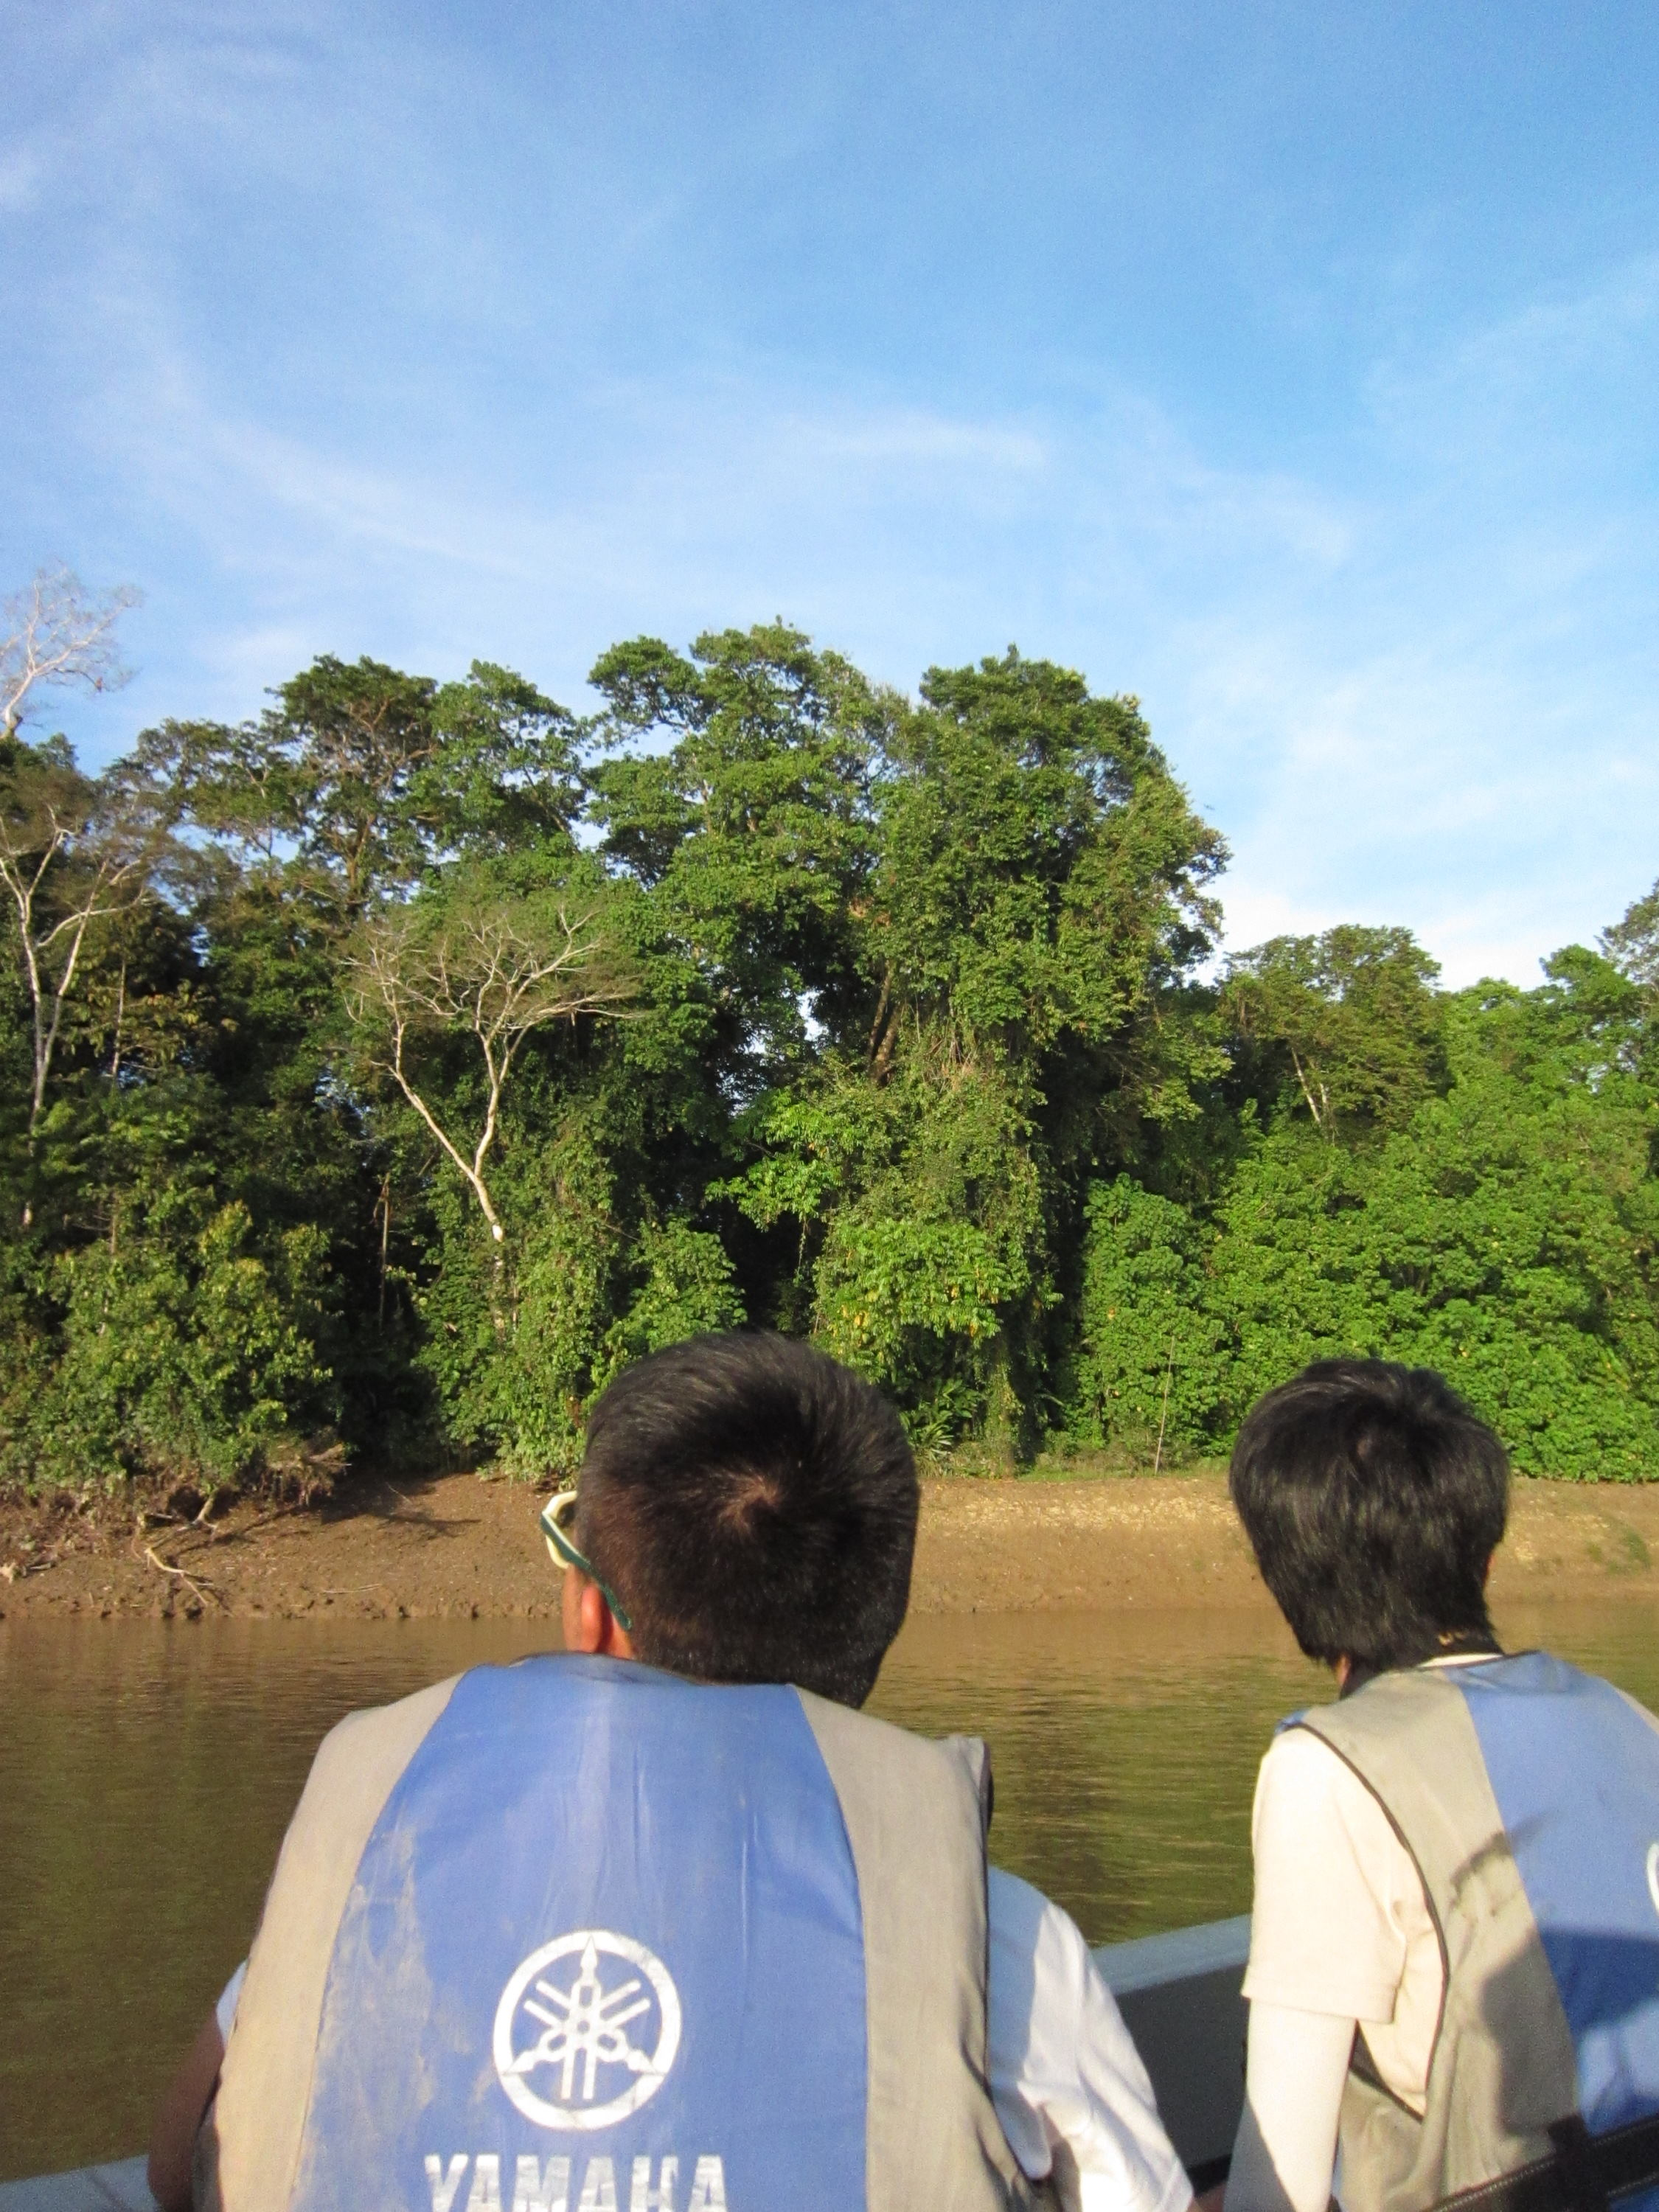 Observing monkey behaviour at the river of Kota Kinabatangan (Photo by Carmen Or)